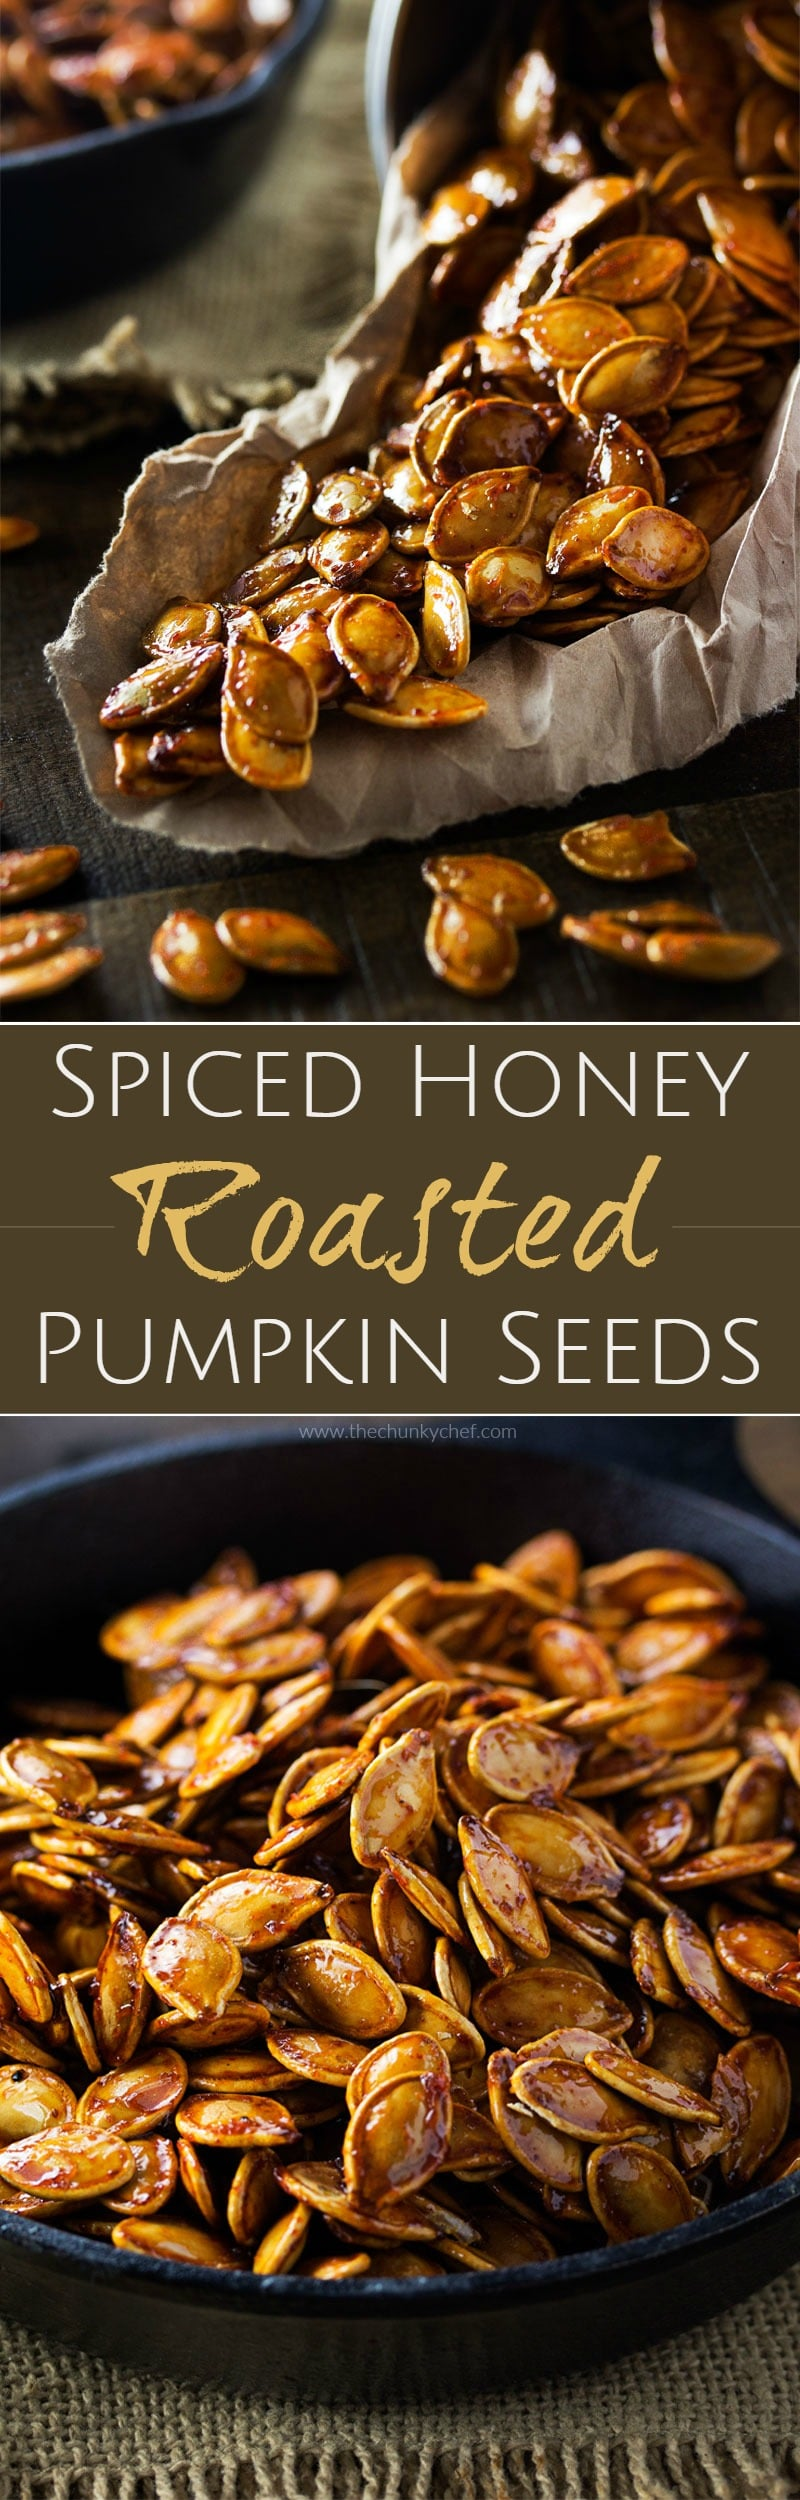 how to cook roasted pumpkin seeds